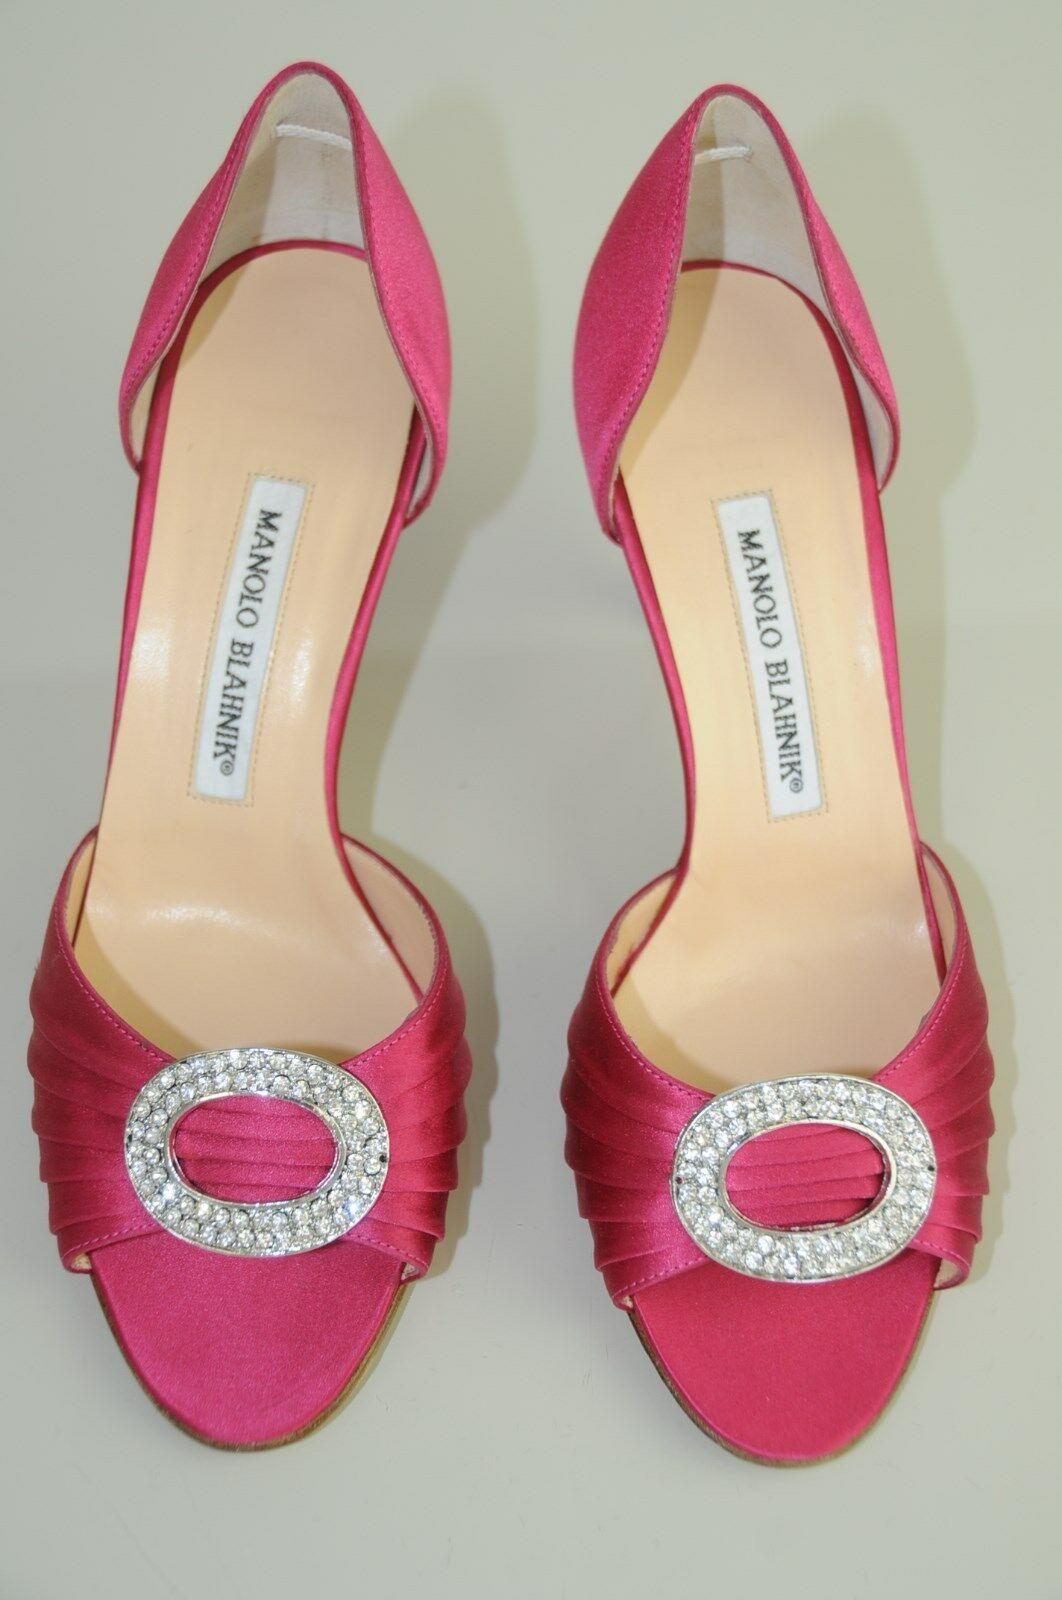 755 New MANOLO BLAHNIK SEDARABY 70 Pink Satin Silver Jeweled SHOES Heels 36.5